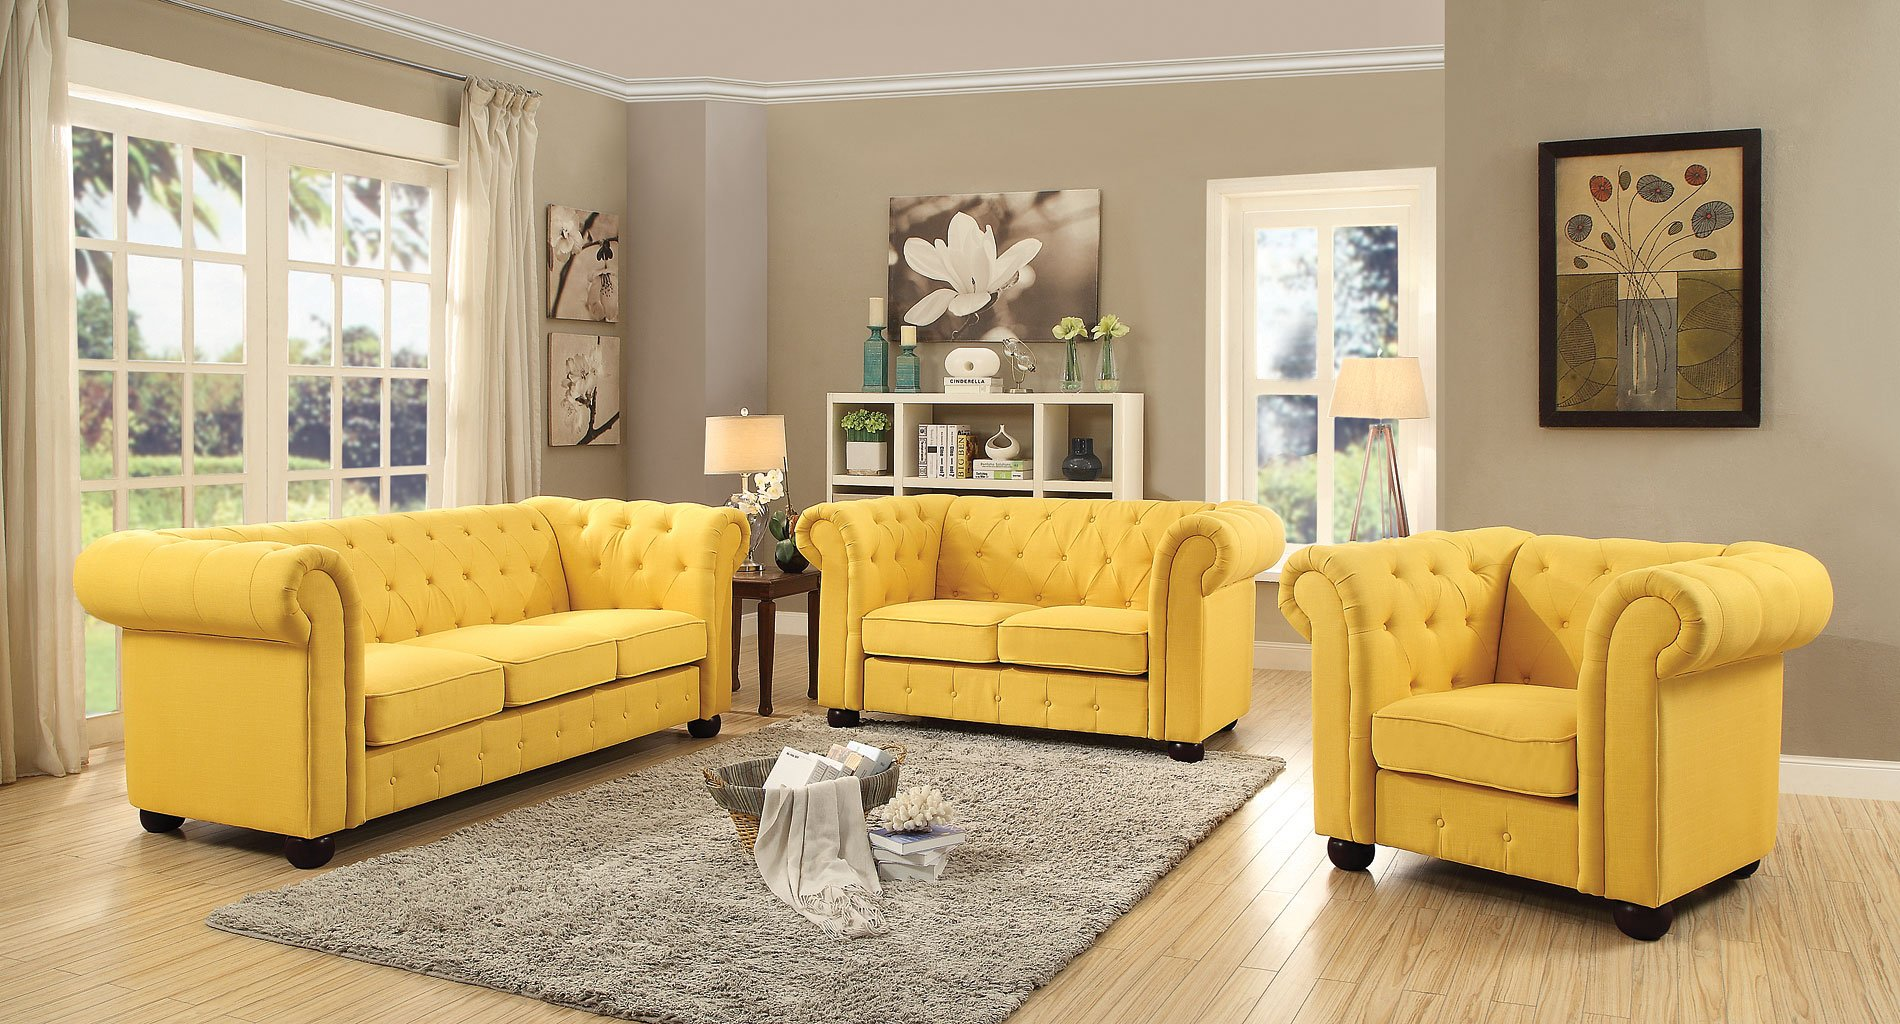 G5 Tufted Living Room Set (Yellow)